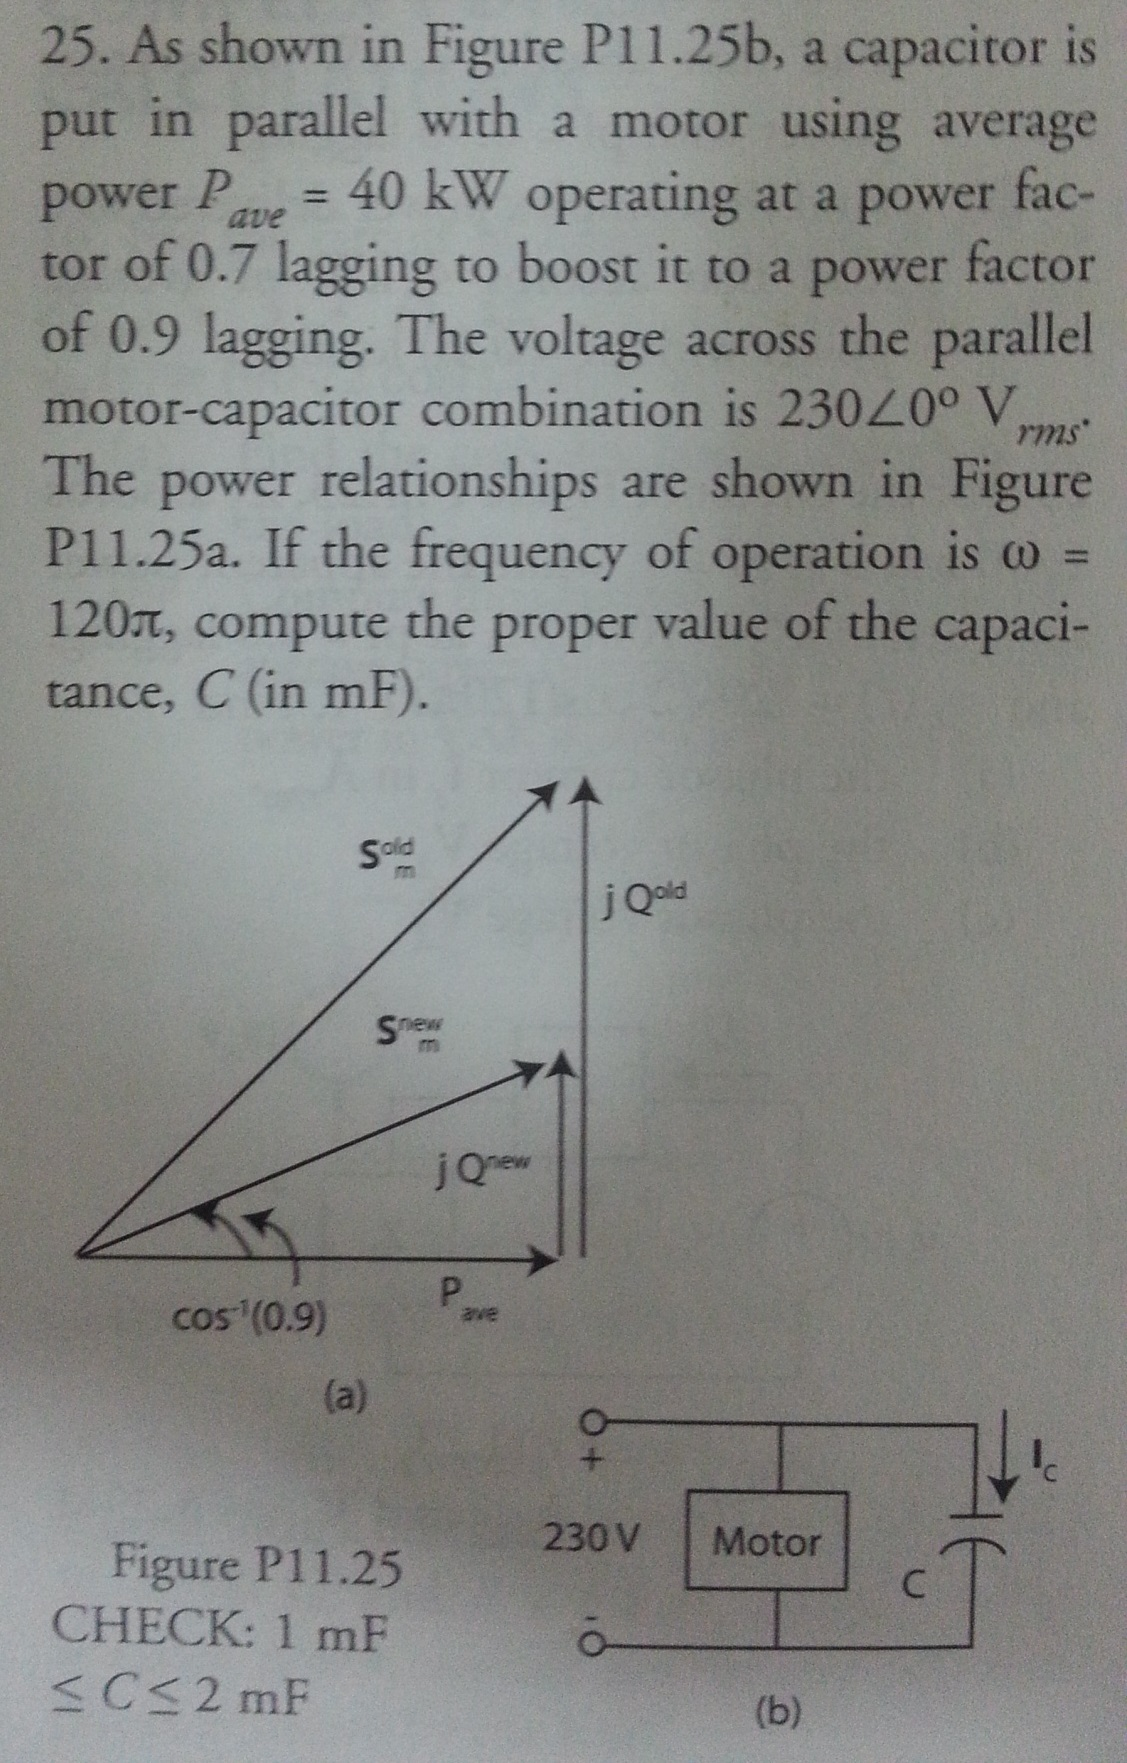 As shown in Figure P11.25b, a capacitor is put in